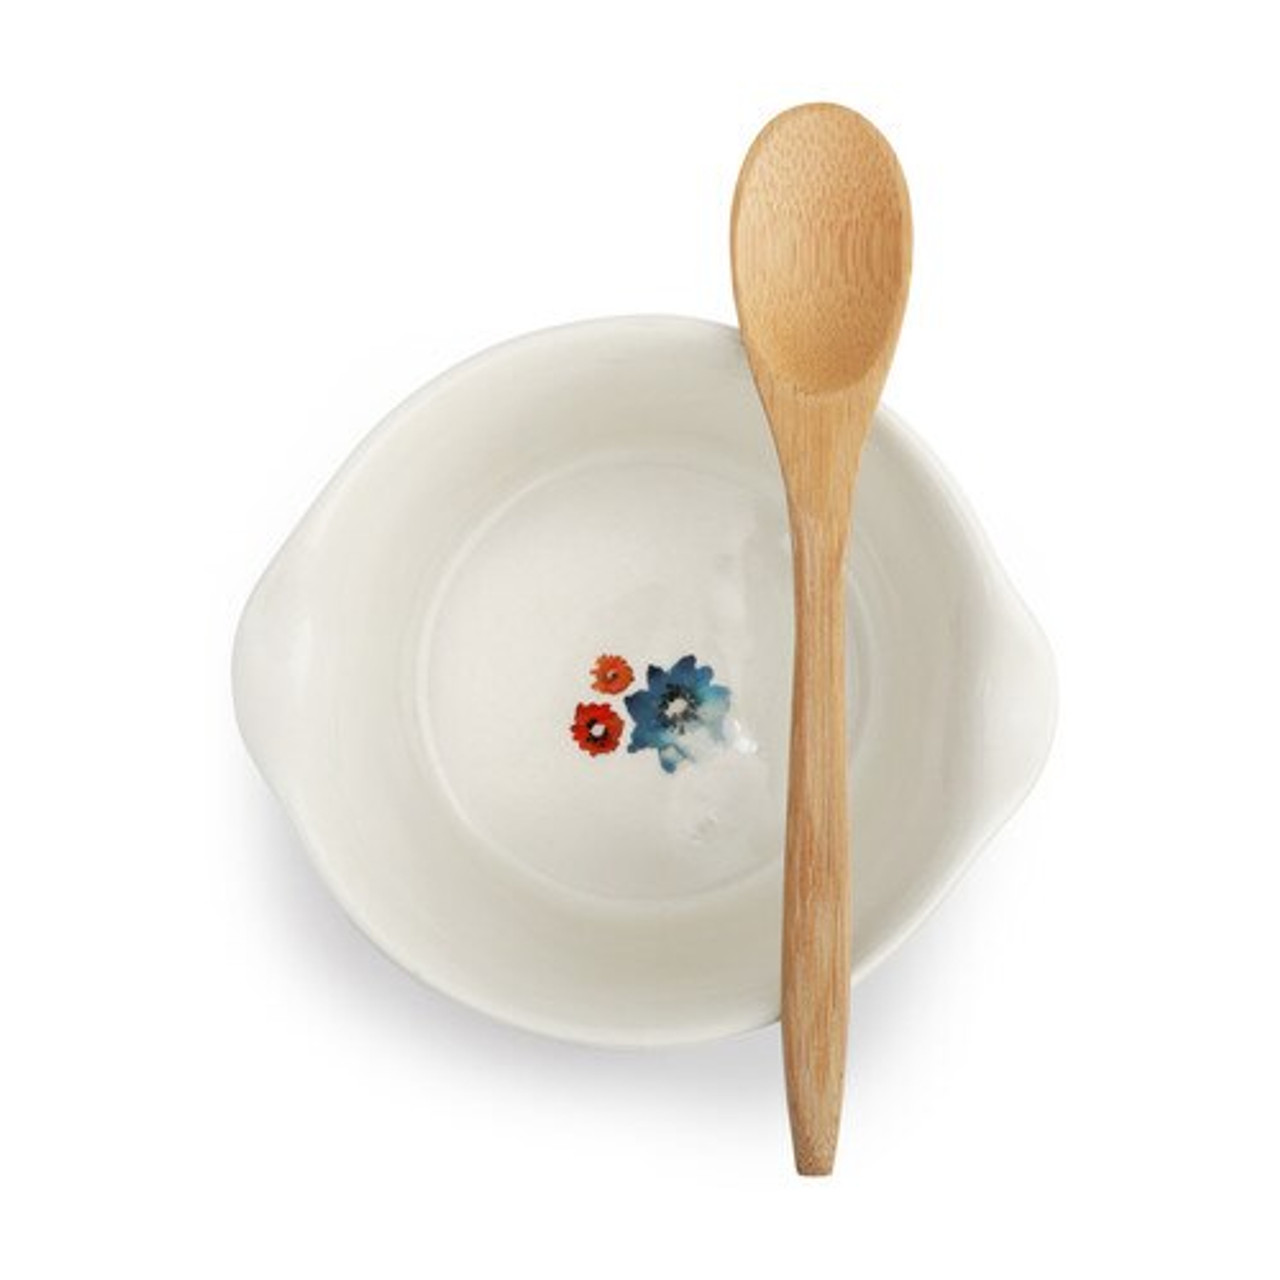 This hand-textured dish features an original floral design, ideal for kitchen decor. Any cook or baking enthusiast will enjoy this unique ceramic bowl. It's great for appetizer serving or baking, standing up to 400 degrees of oven heat.